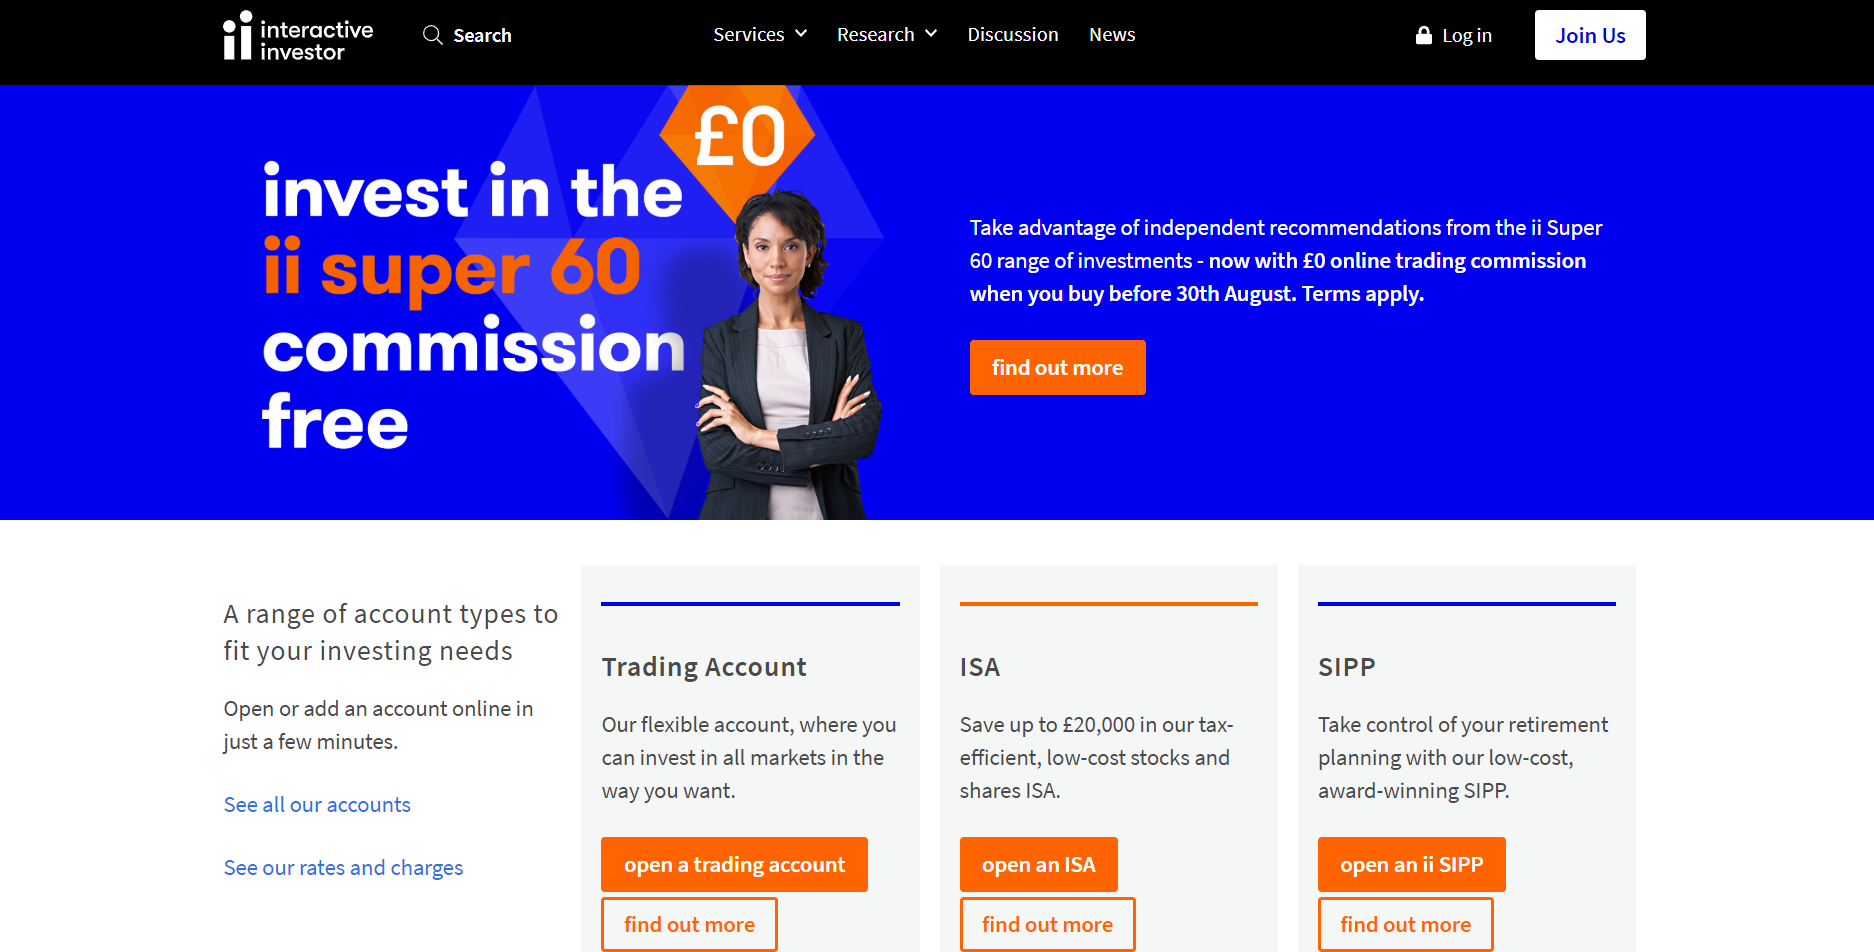 This is the website of interactive investors